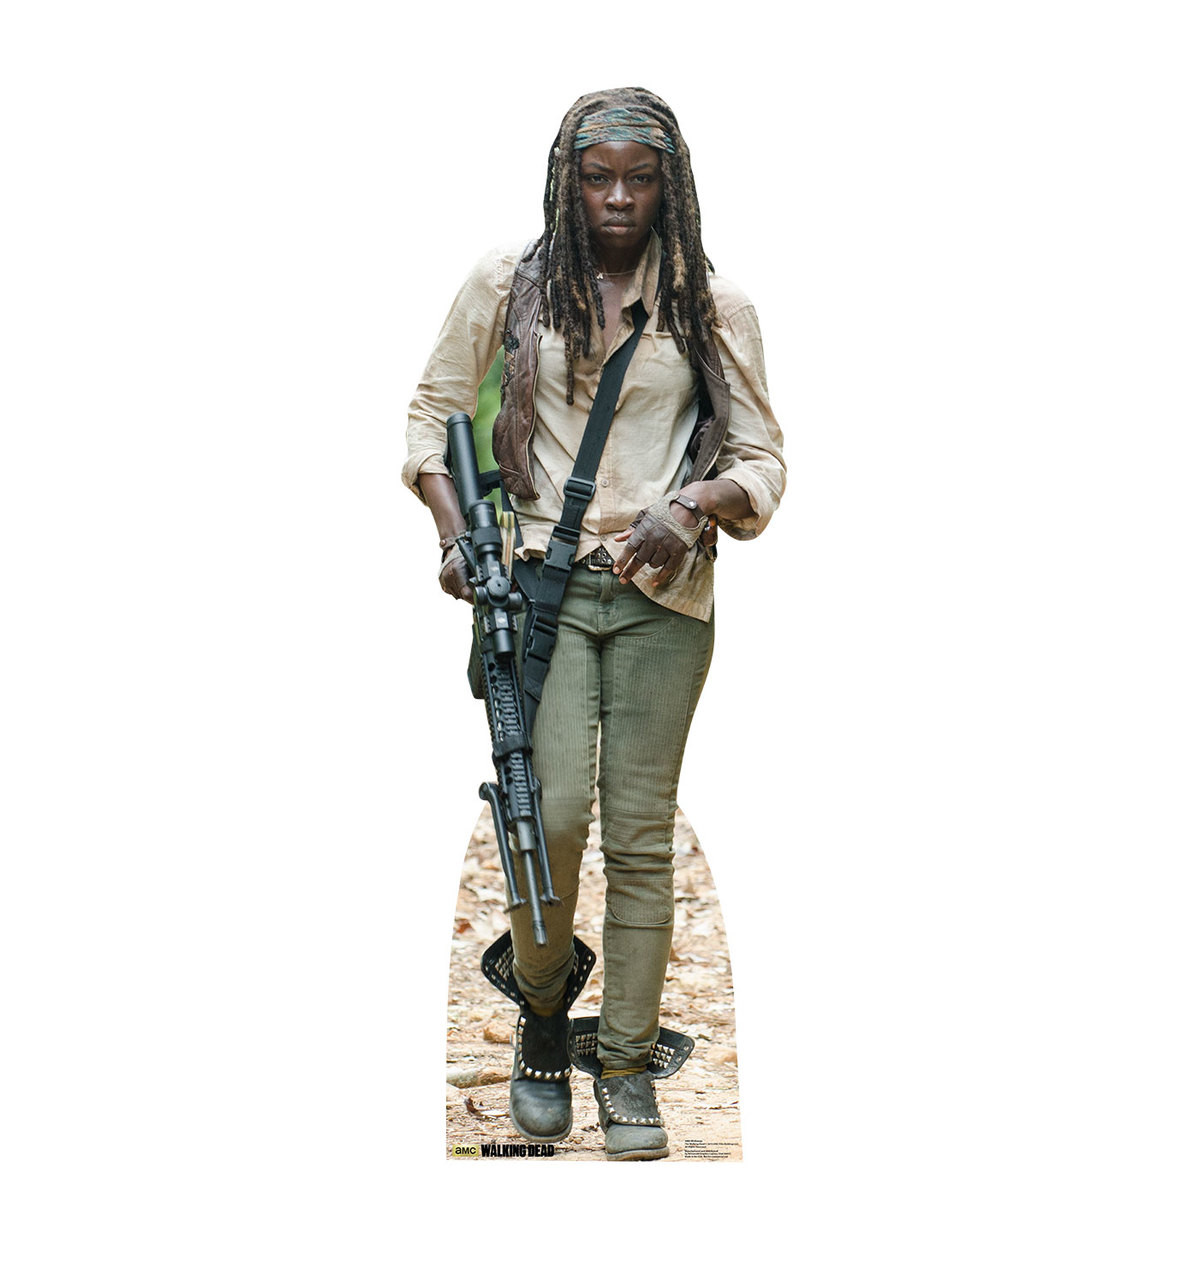 Life-size Michonne (The Walking Dead) Cardboard Standup | Cardboard Cutout